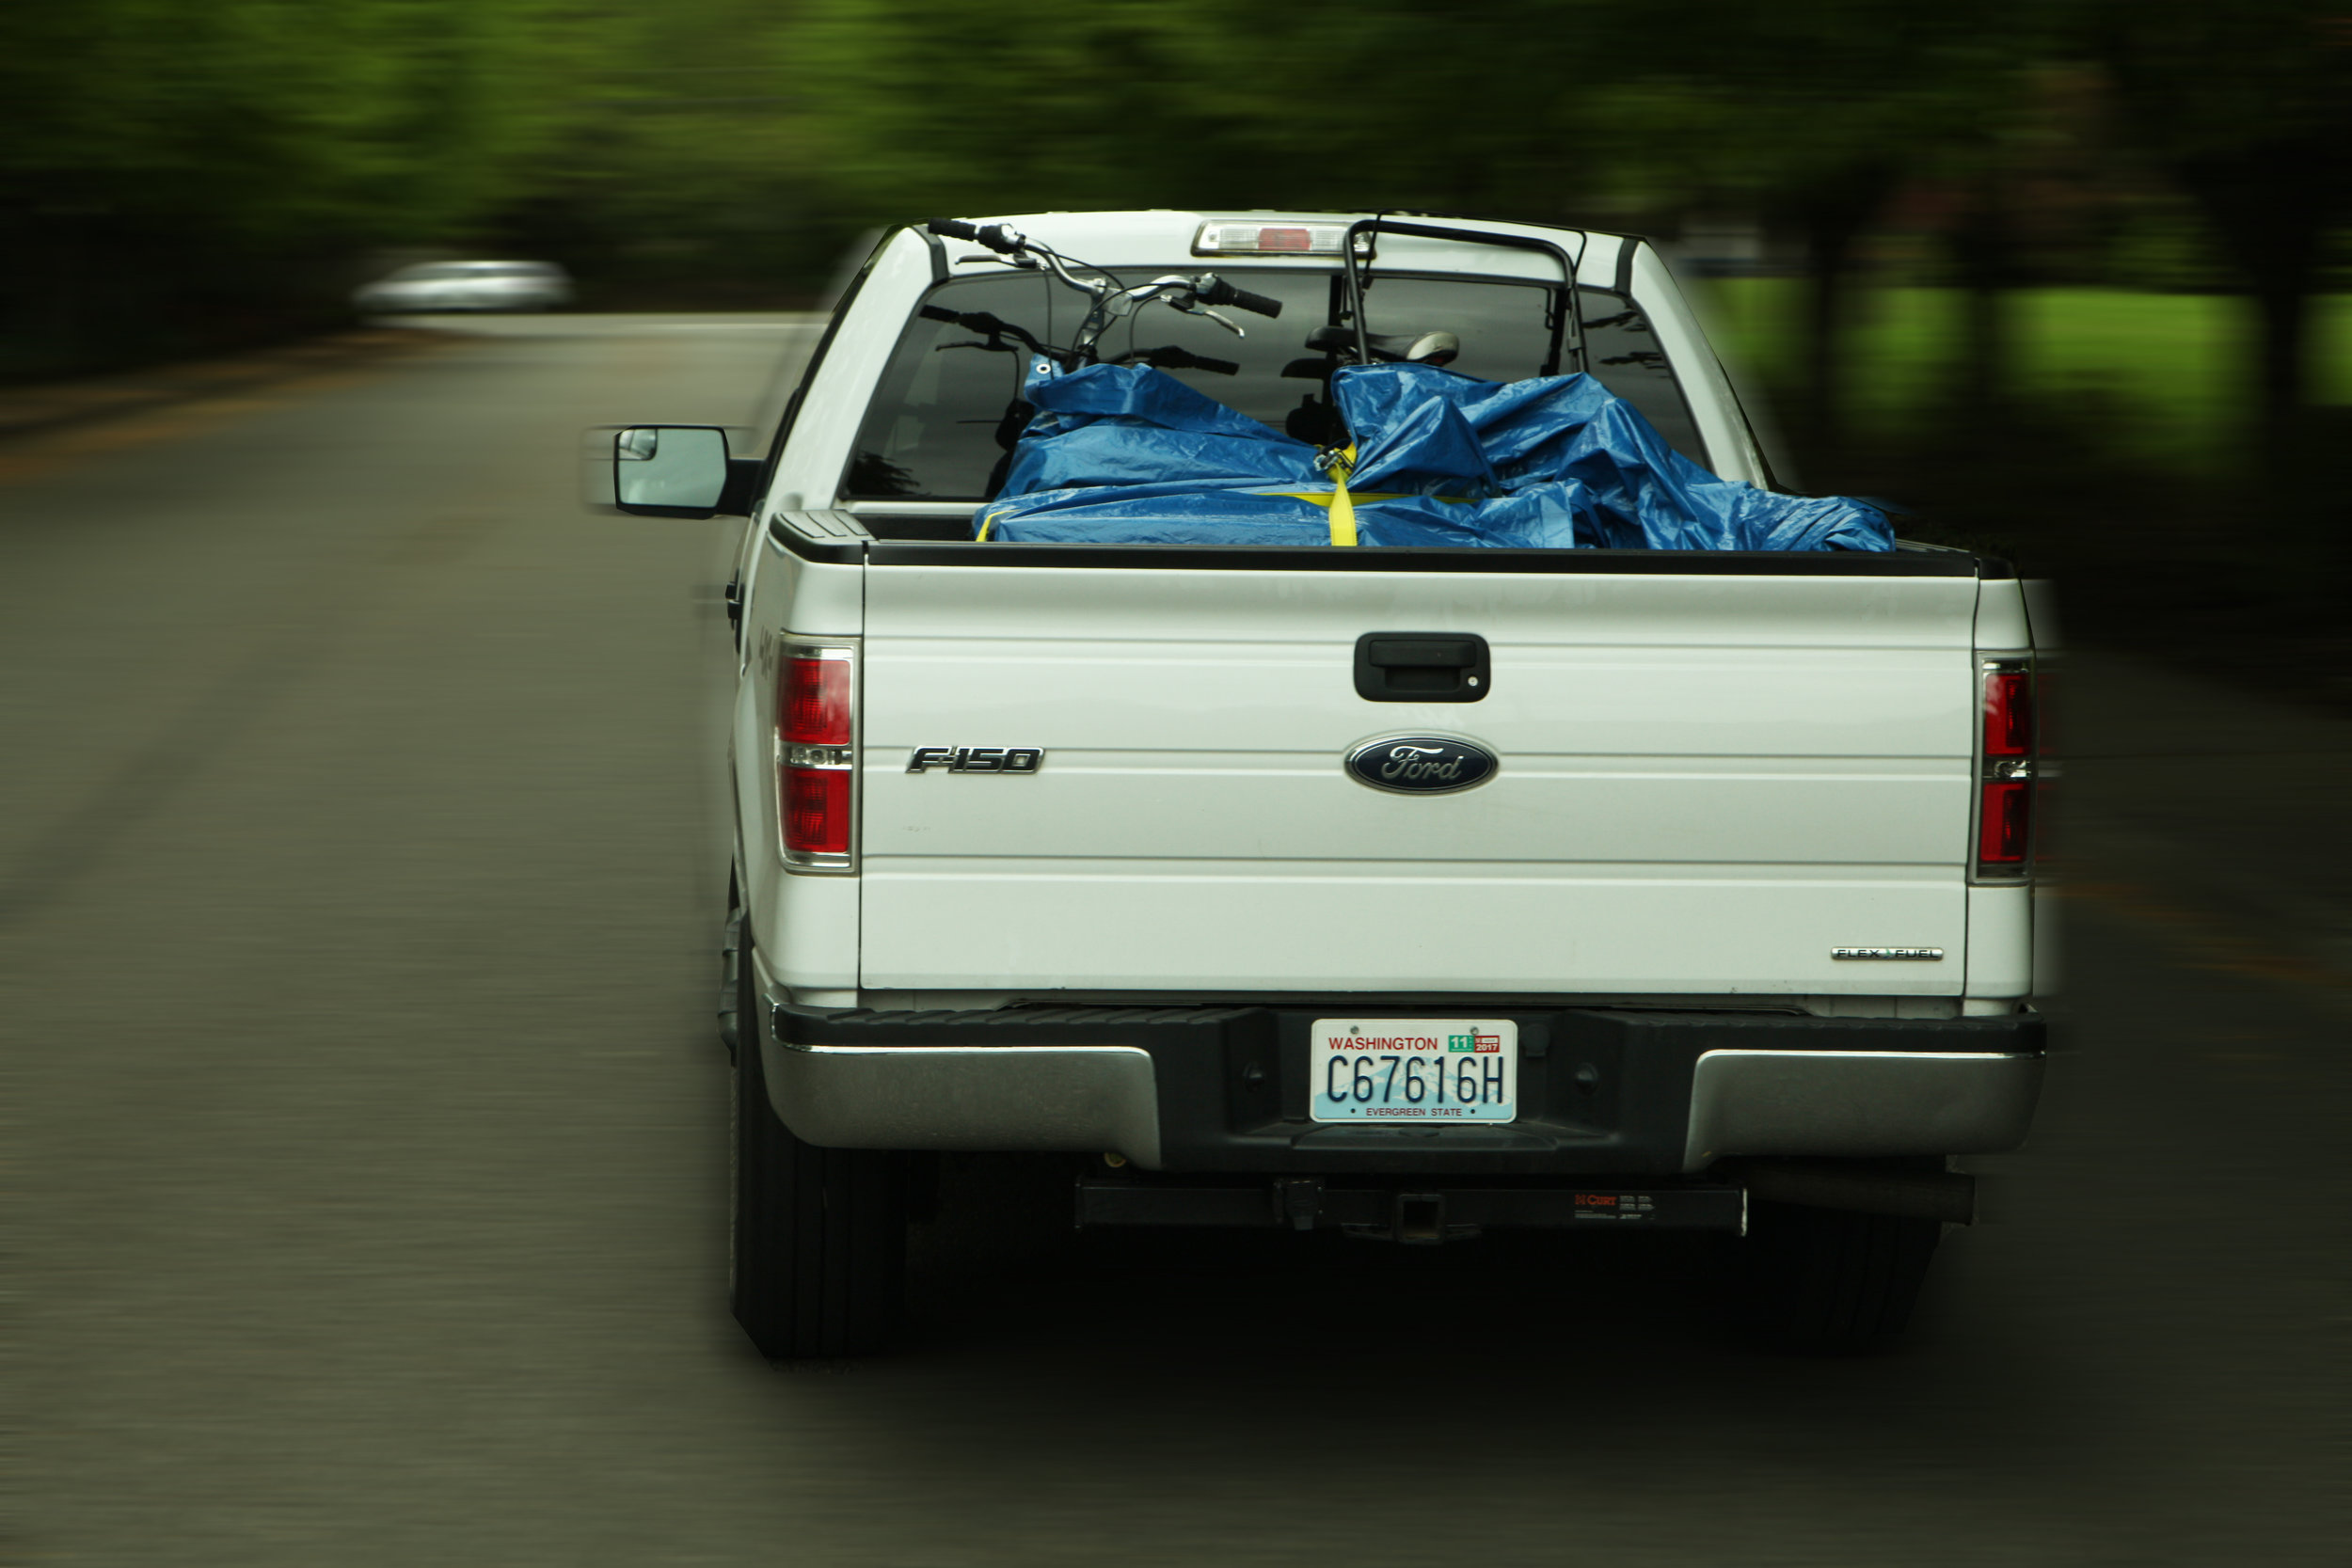 Pack contents on top of your tarp and wrap it tight. This keeps your load and your tarp secure.